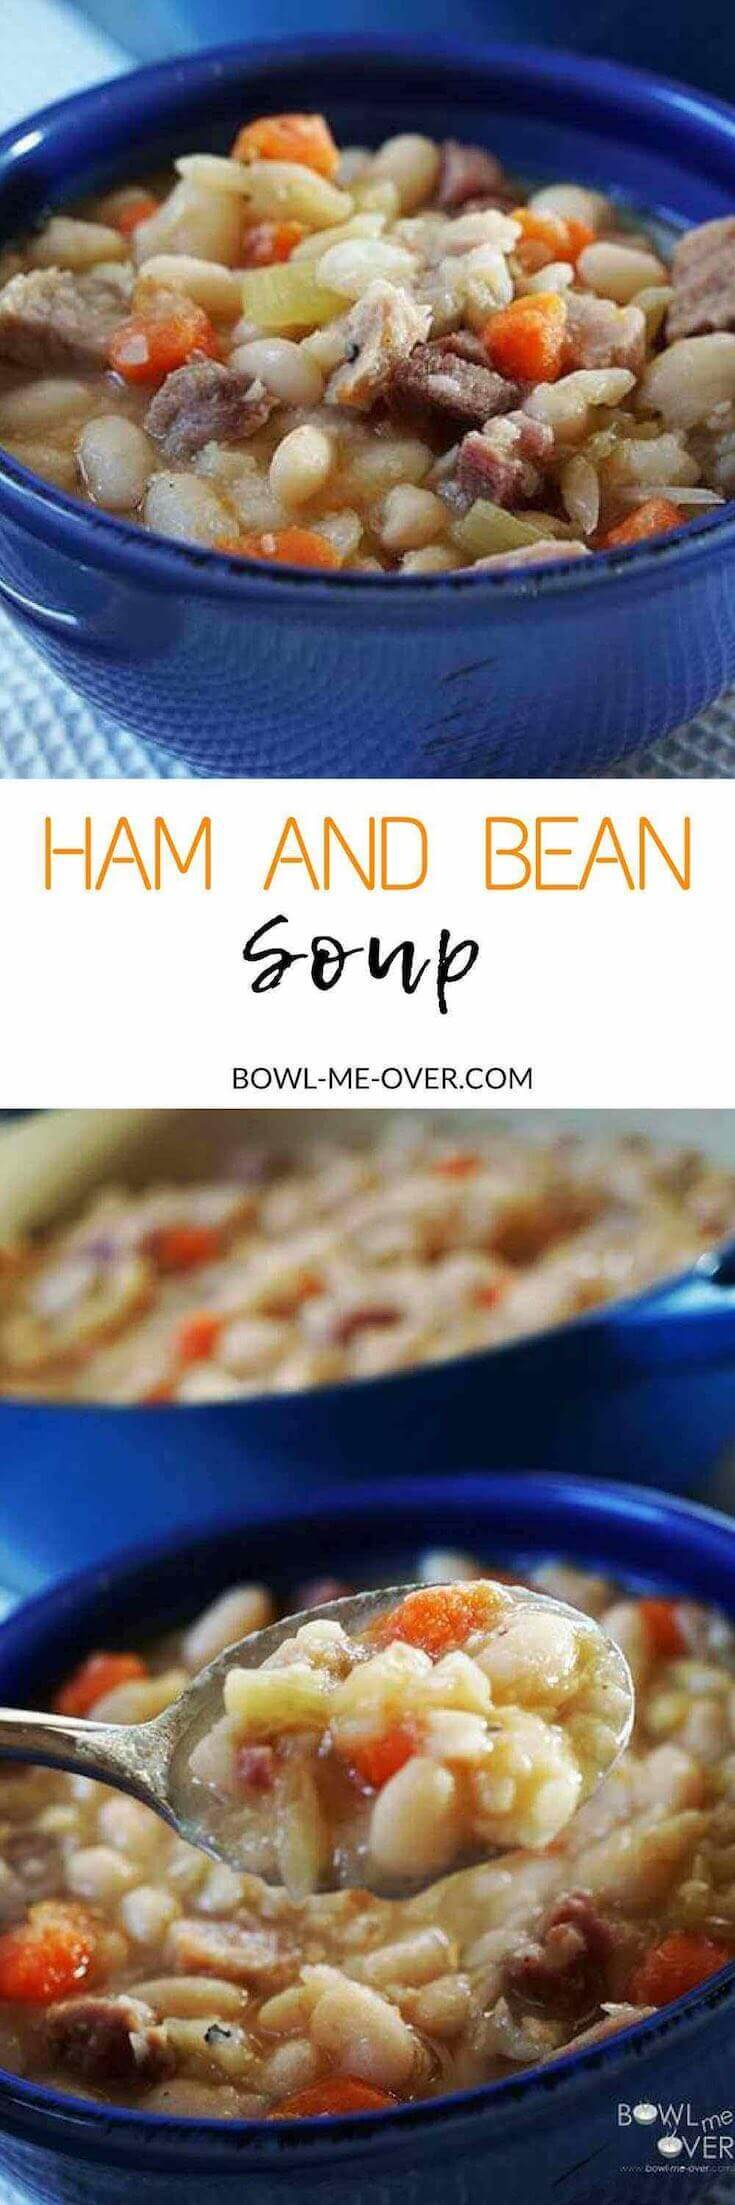 The blue bowls full of hearty Navy Bean Soup with Ham.